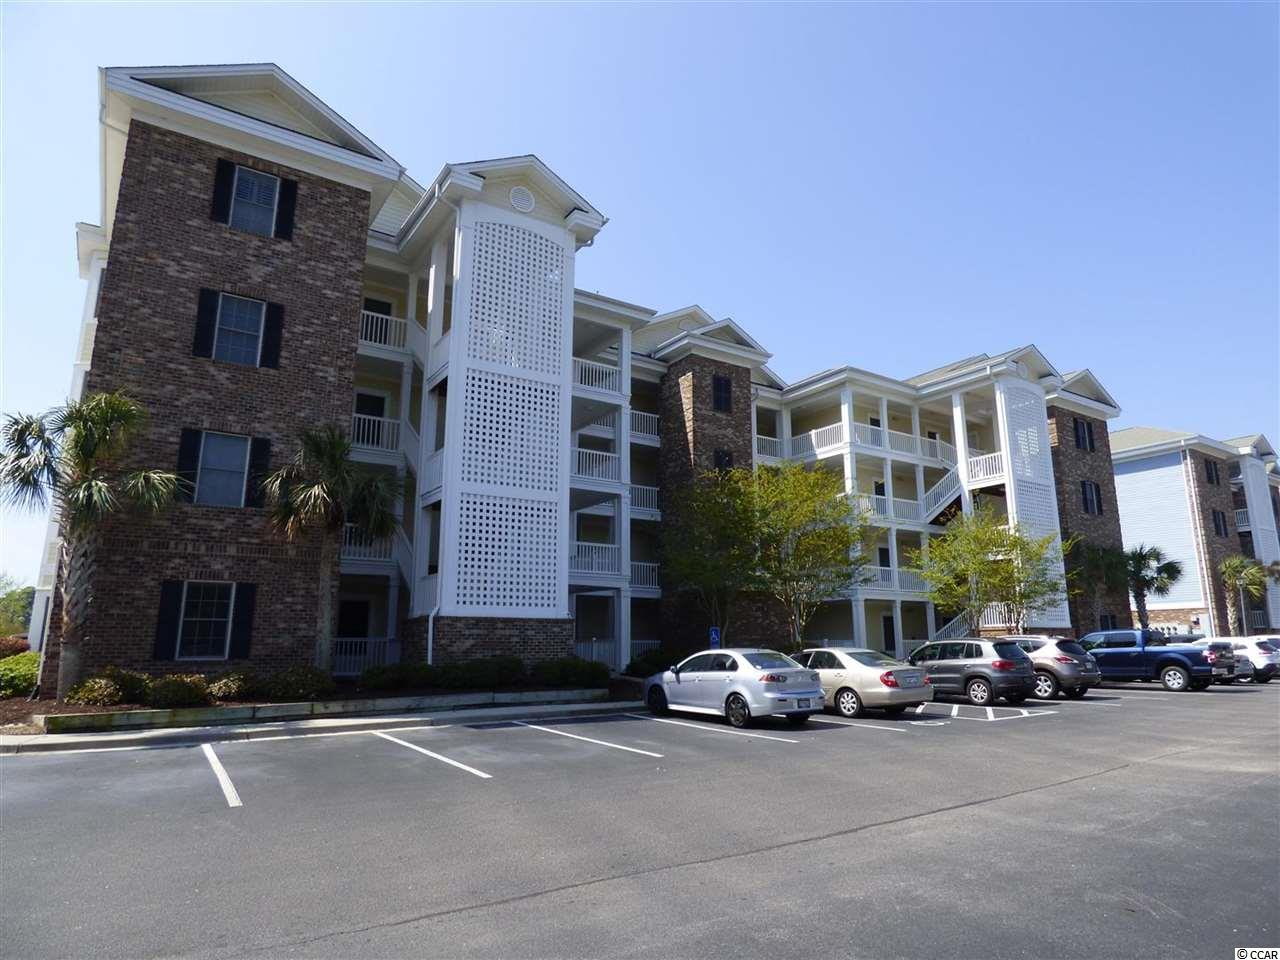 Lake/Pond View Condo in Myrtle Beach South Carolina